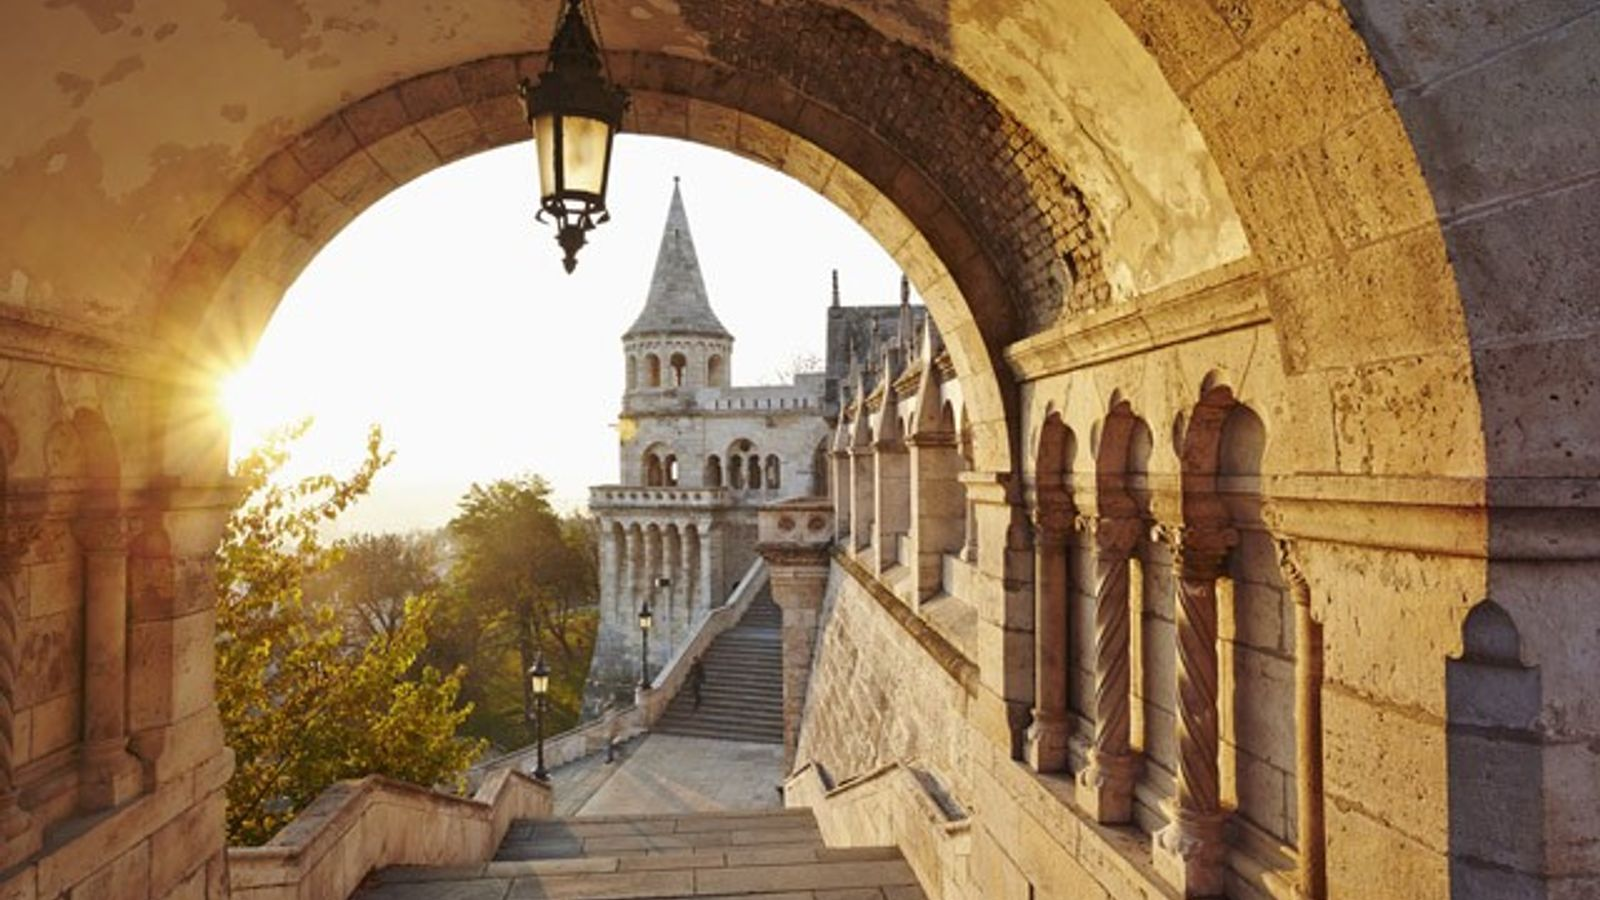 Fisherman's Bastion, a neo-Gothic folly overlooking Pest